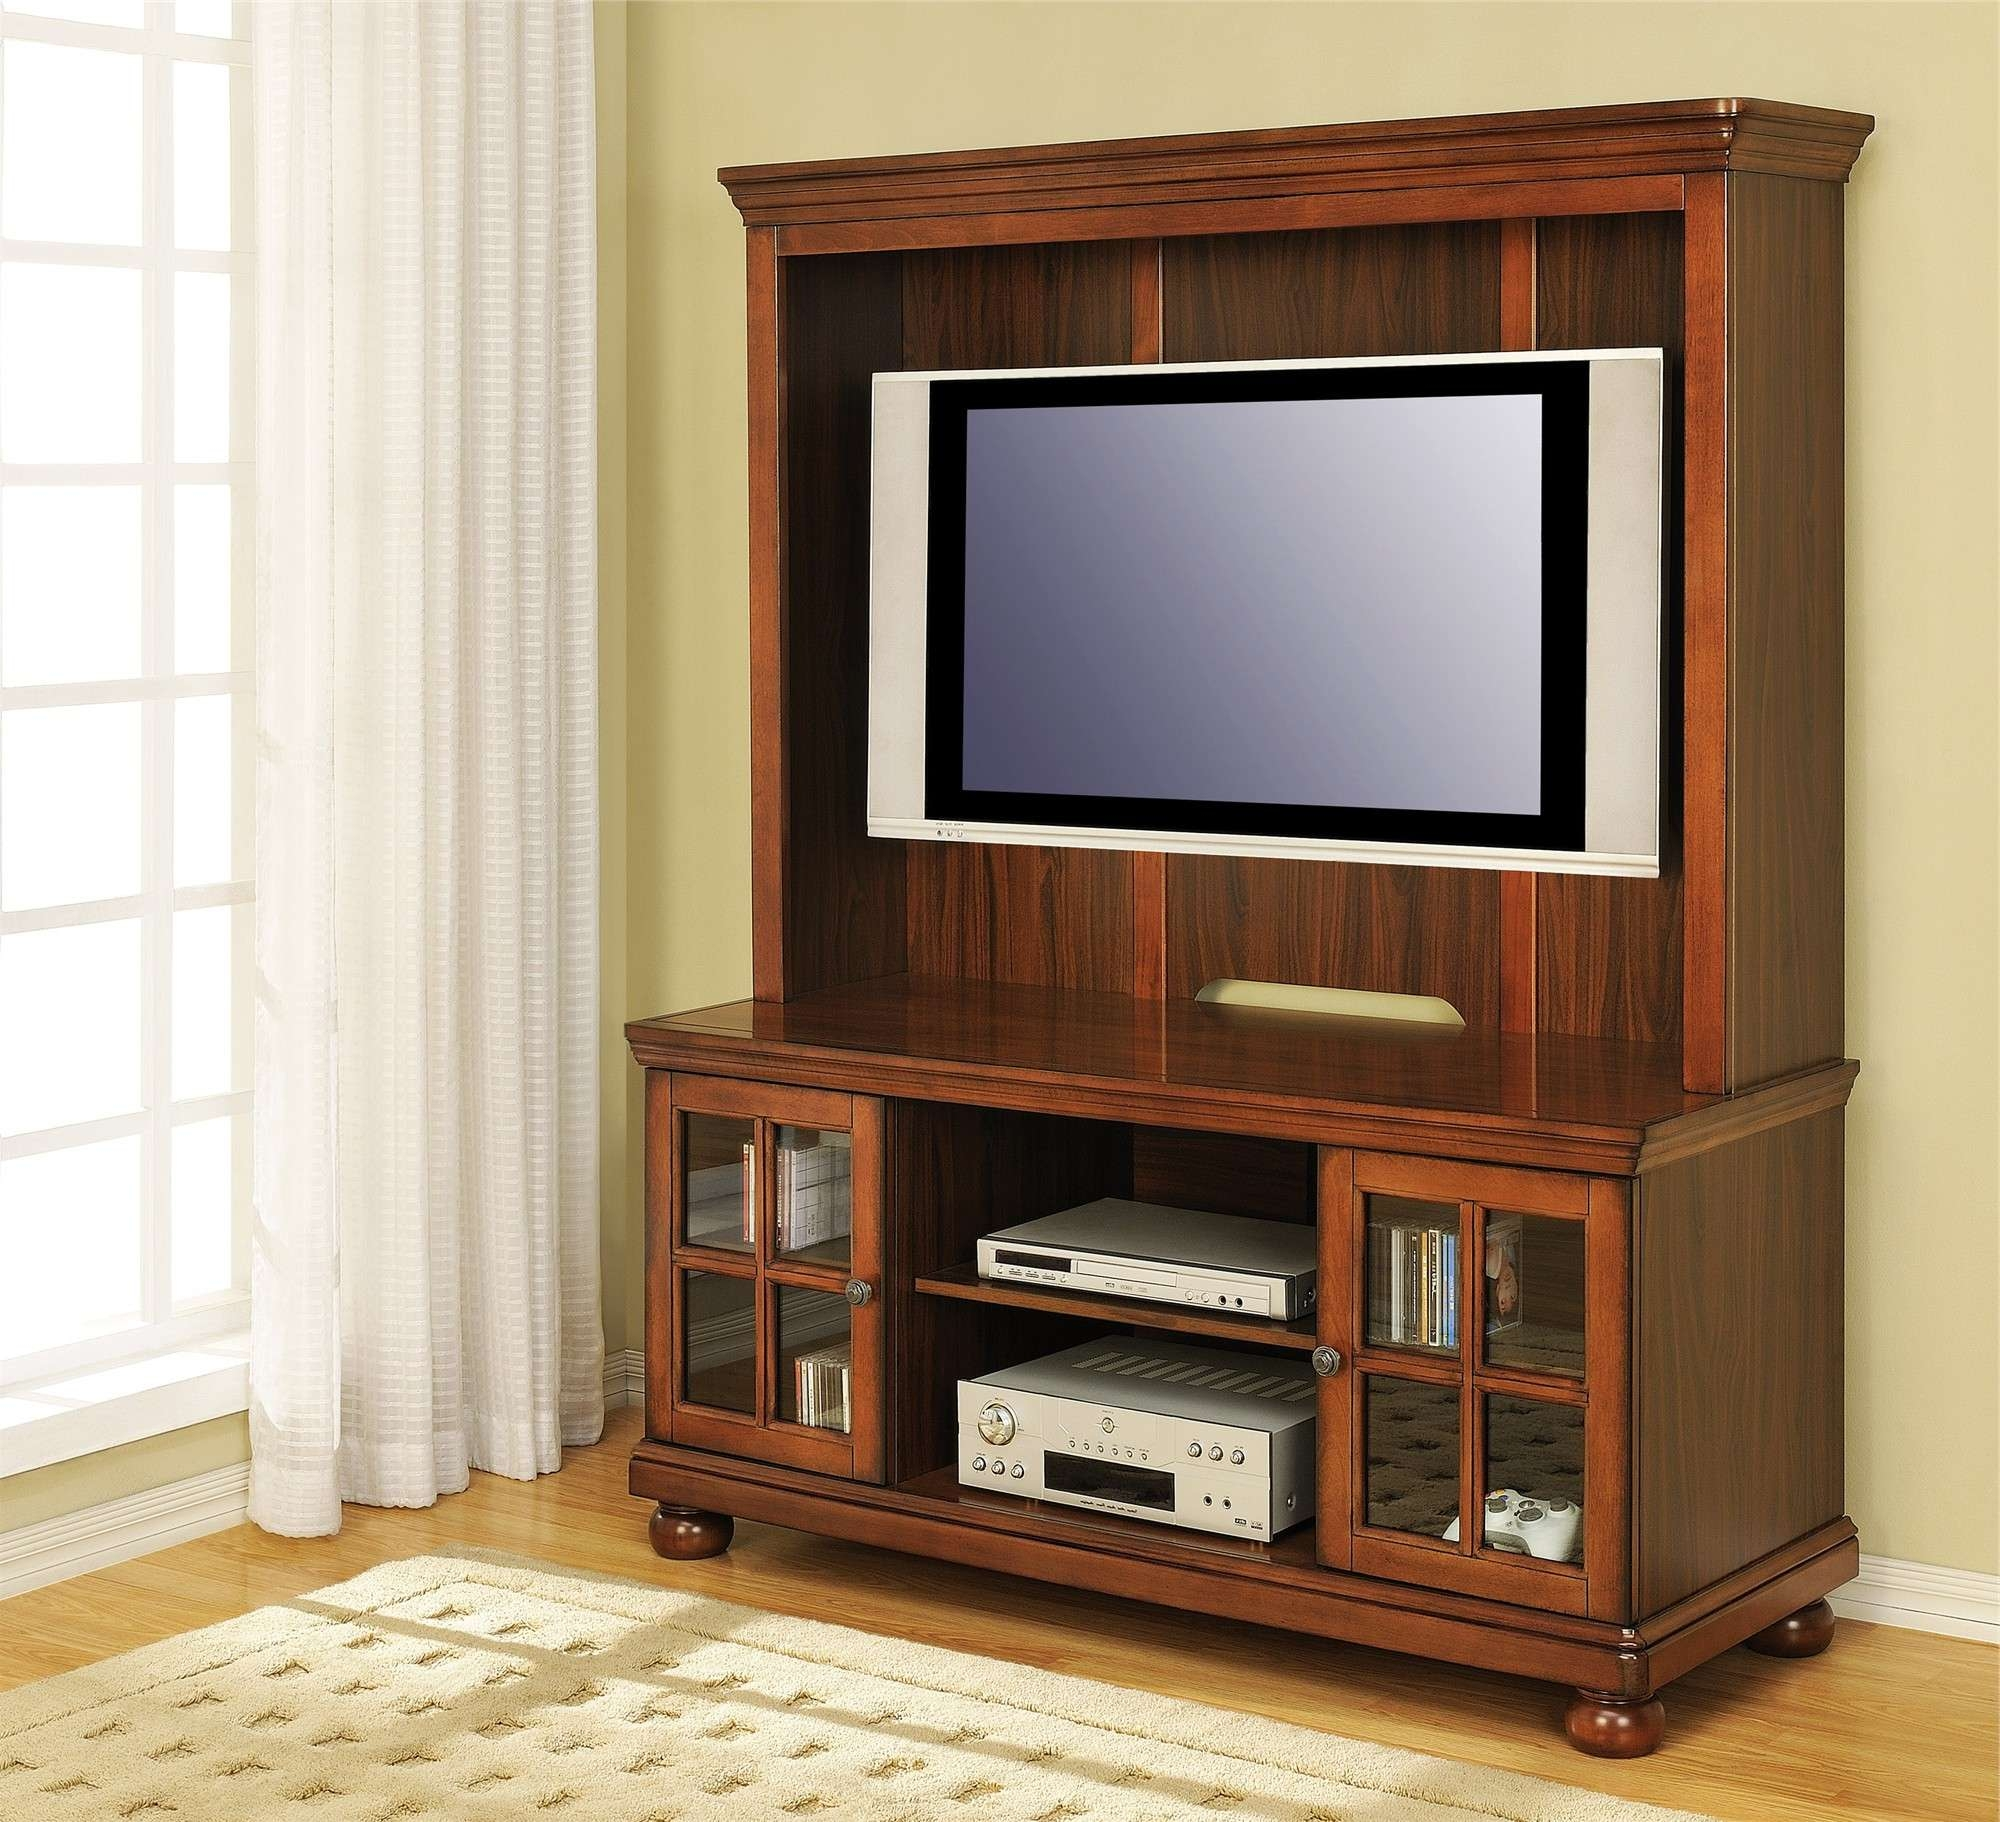 Unique Wood Tv Stands For Flat Screens 25 On Small Home Remodel Within Unique Tv Stands For Flat Screens (View 5 of 20)